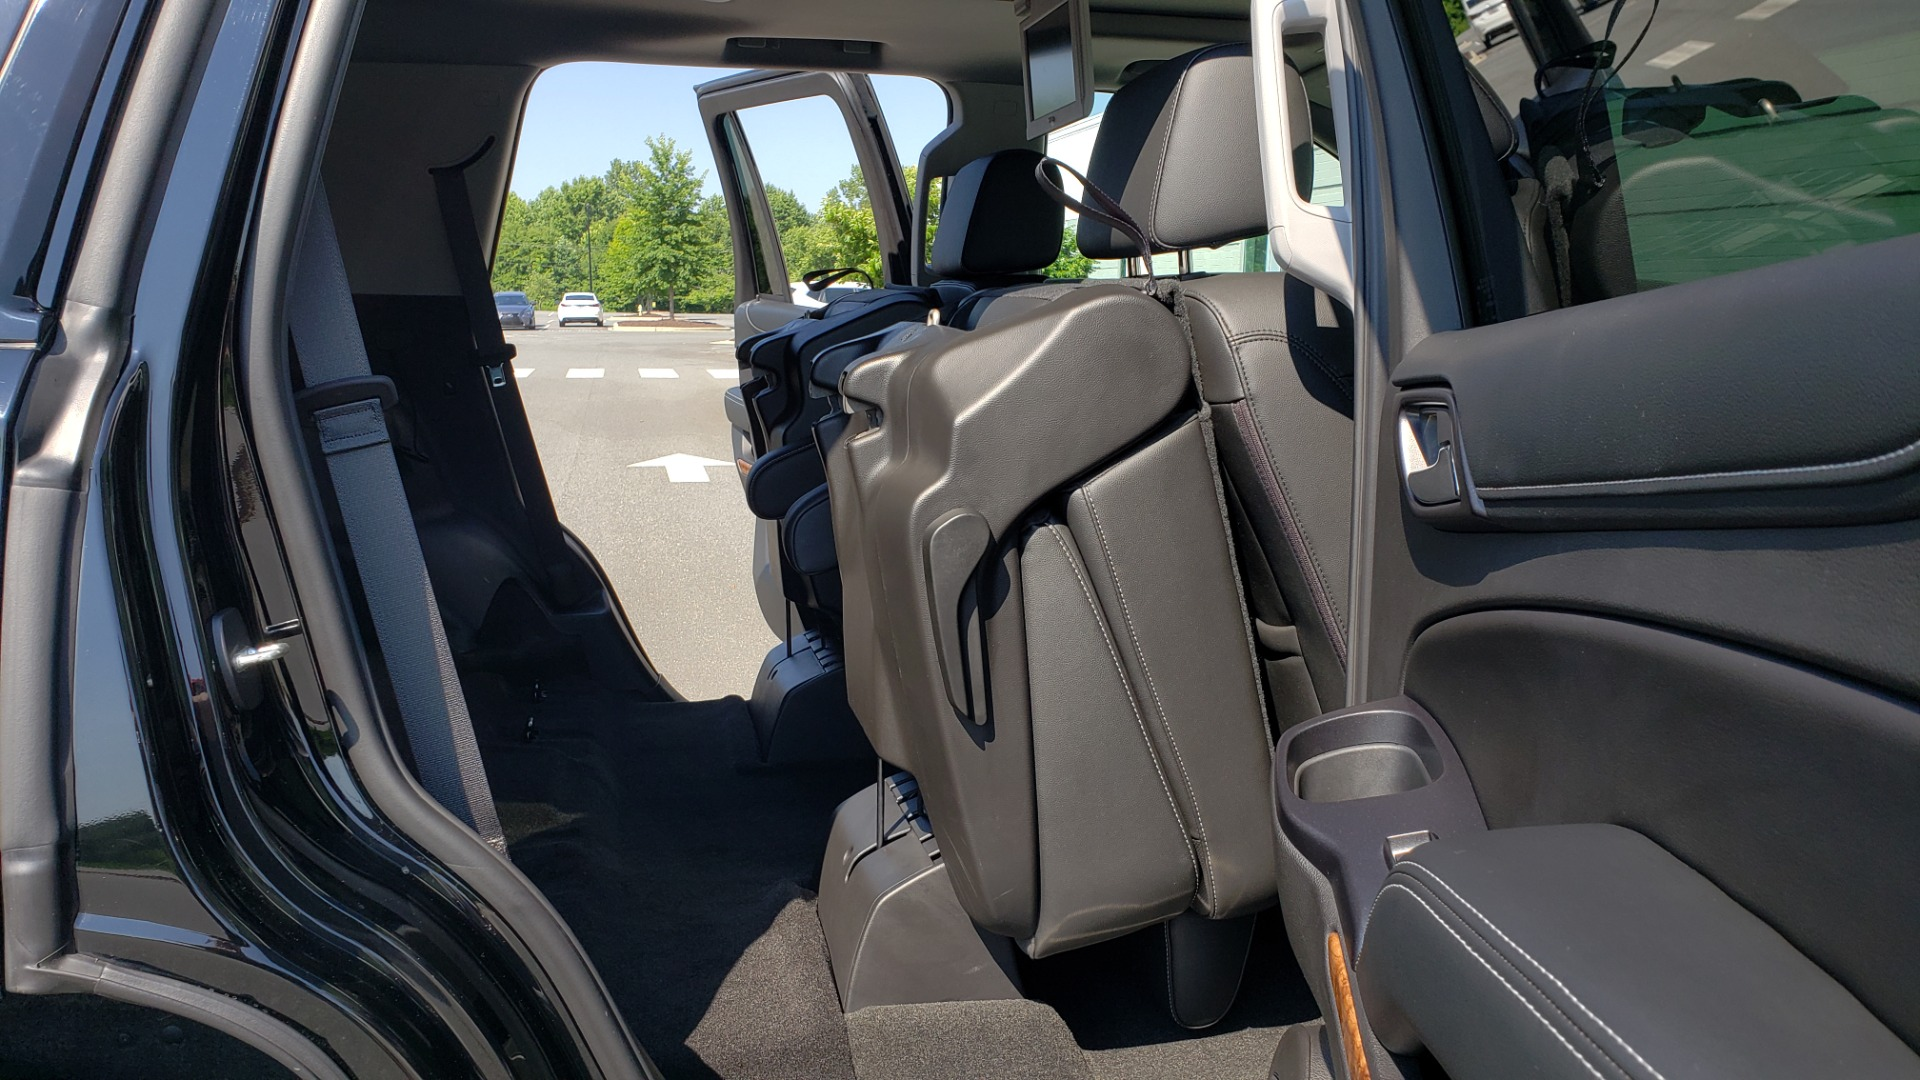 Used 2018 Chevrolet TAHOE PREMIER RST / 4X4 / NAV / BOSE / SUNROOF / 3-ROW / REARVIEW for sale $65,995 at Formula Imports in Charlotte NC 28227 71